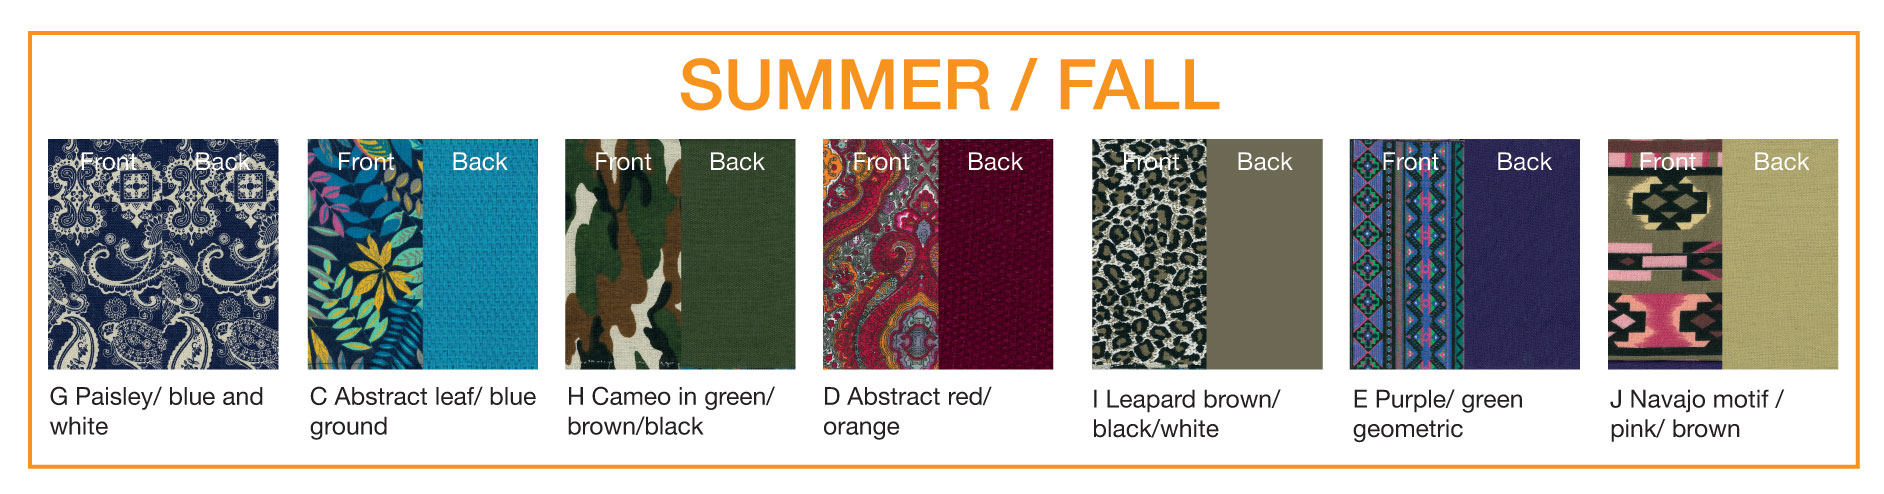 KuddleKrew Outer Cover Summer-Fall Patterns